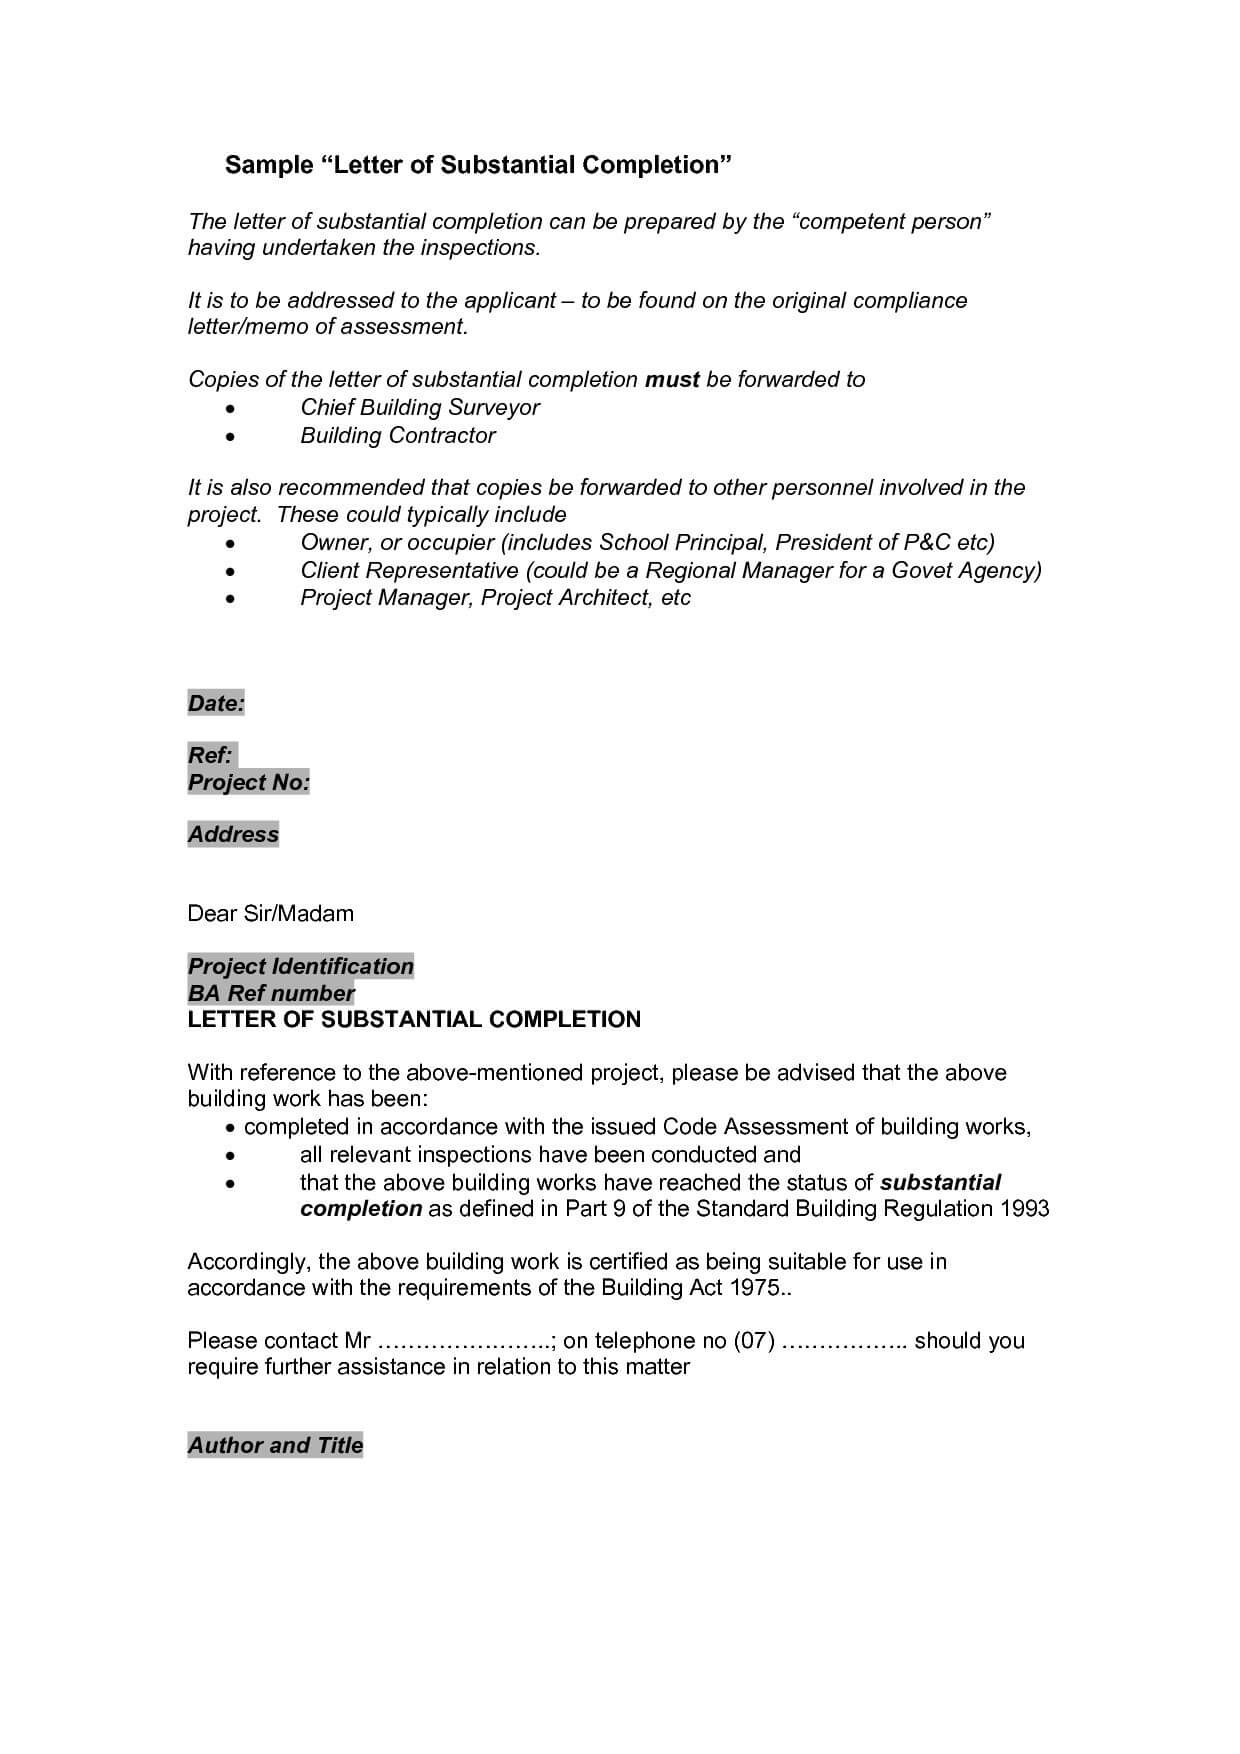 Letter Of Substantial Completion Template Examples | Letter In Certificate Of Substantial Completion Template